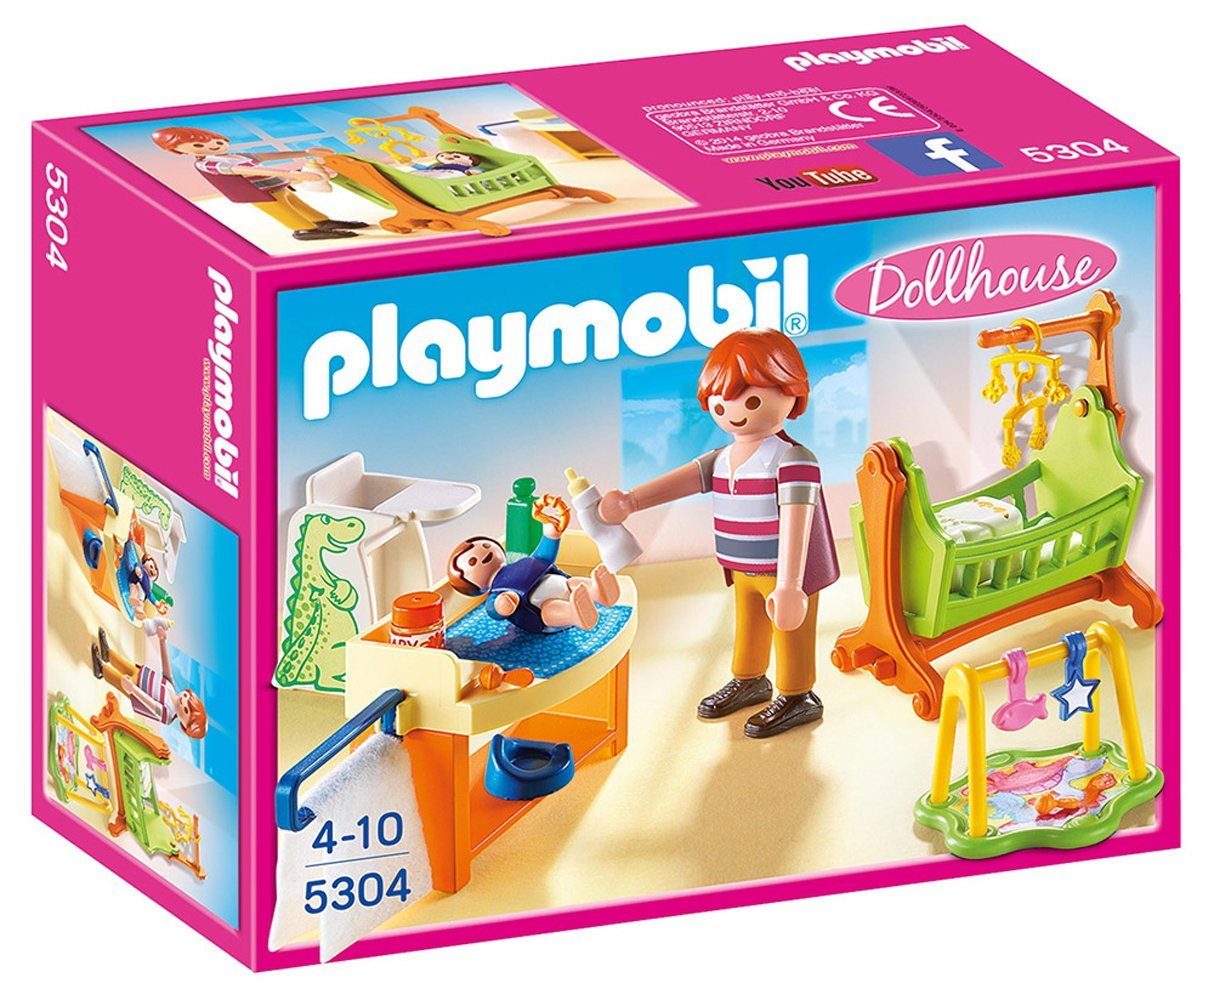 5302 Playmobil Buy Playmobil Baby Room With Mobile In Cheap Price On Alibaba